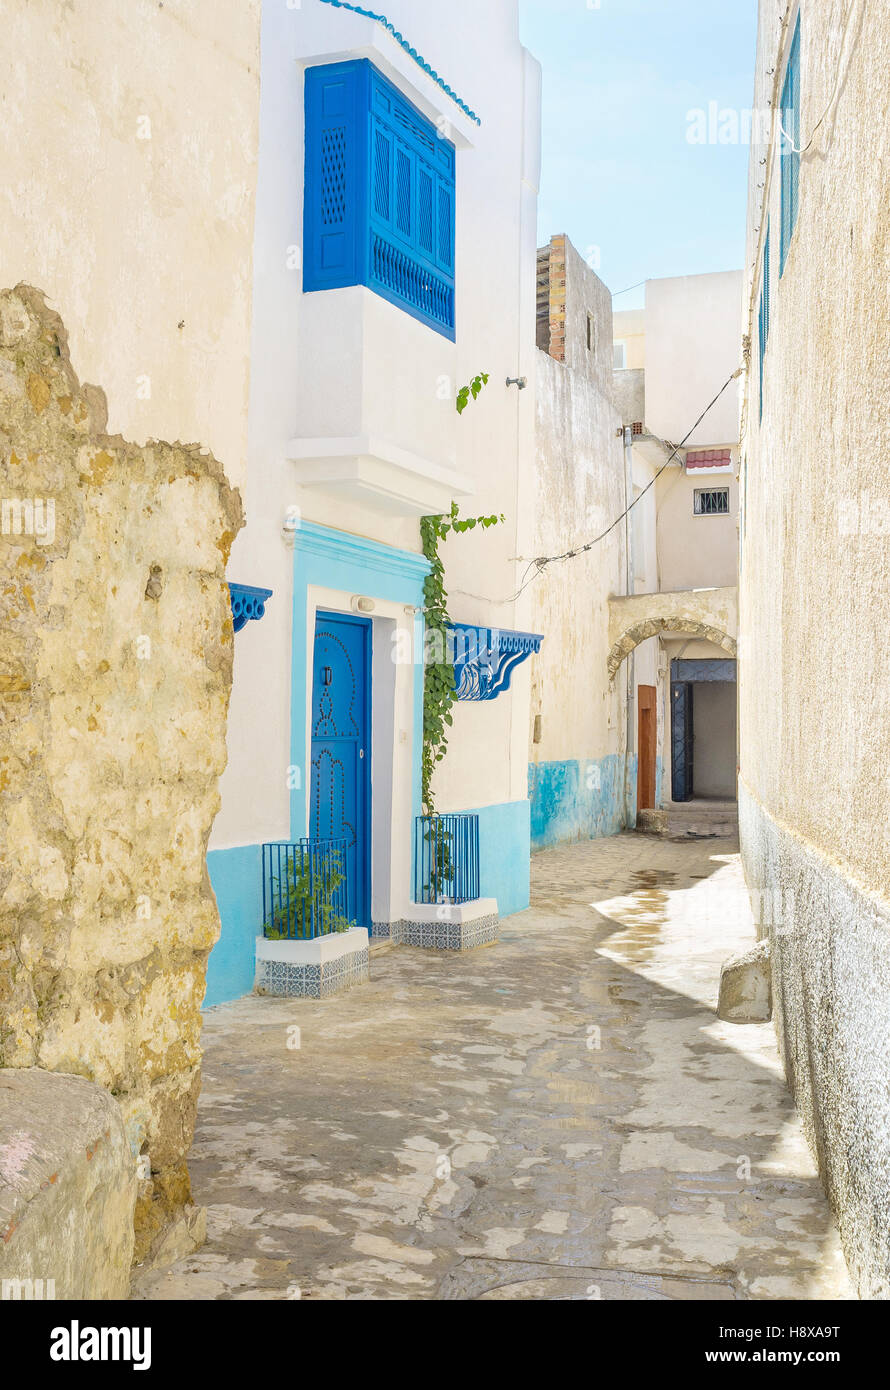 The streets of Medina sometimes are so narrow, that two people can't pass by each other, Bizerte, Tunisia. - Stock Image